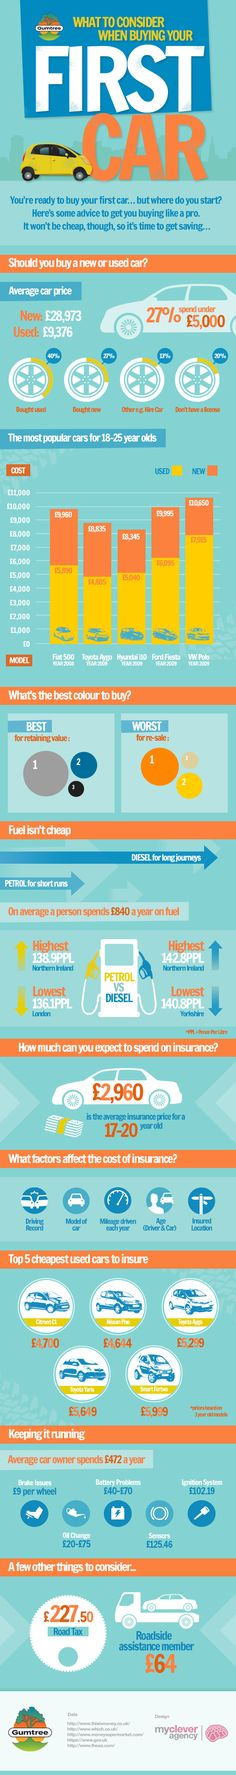 What To Consider When Buying Your First Car